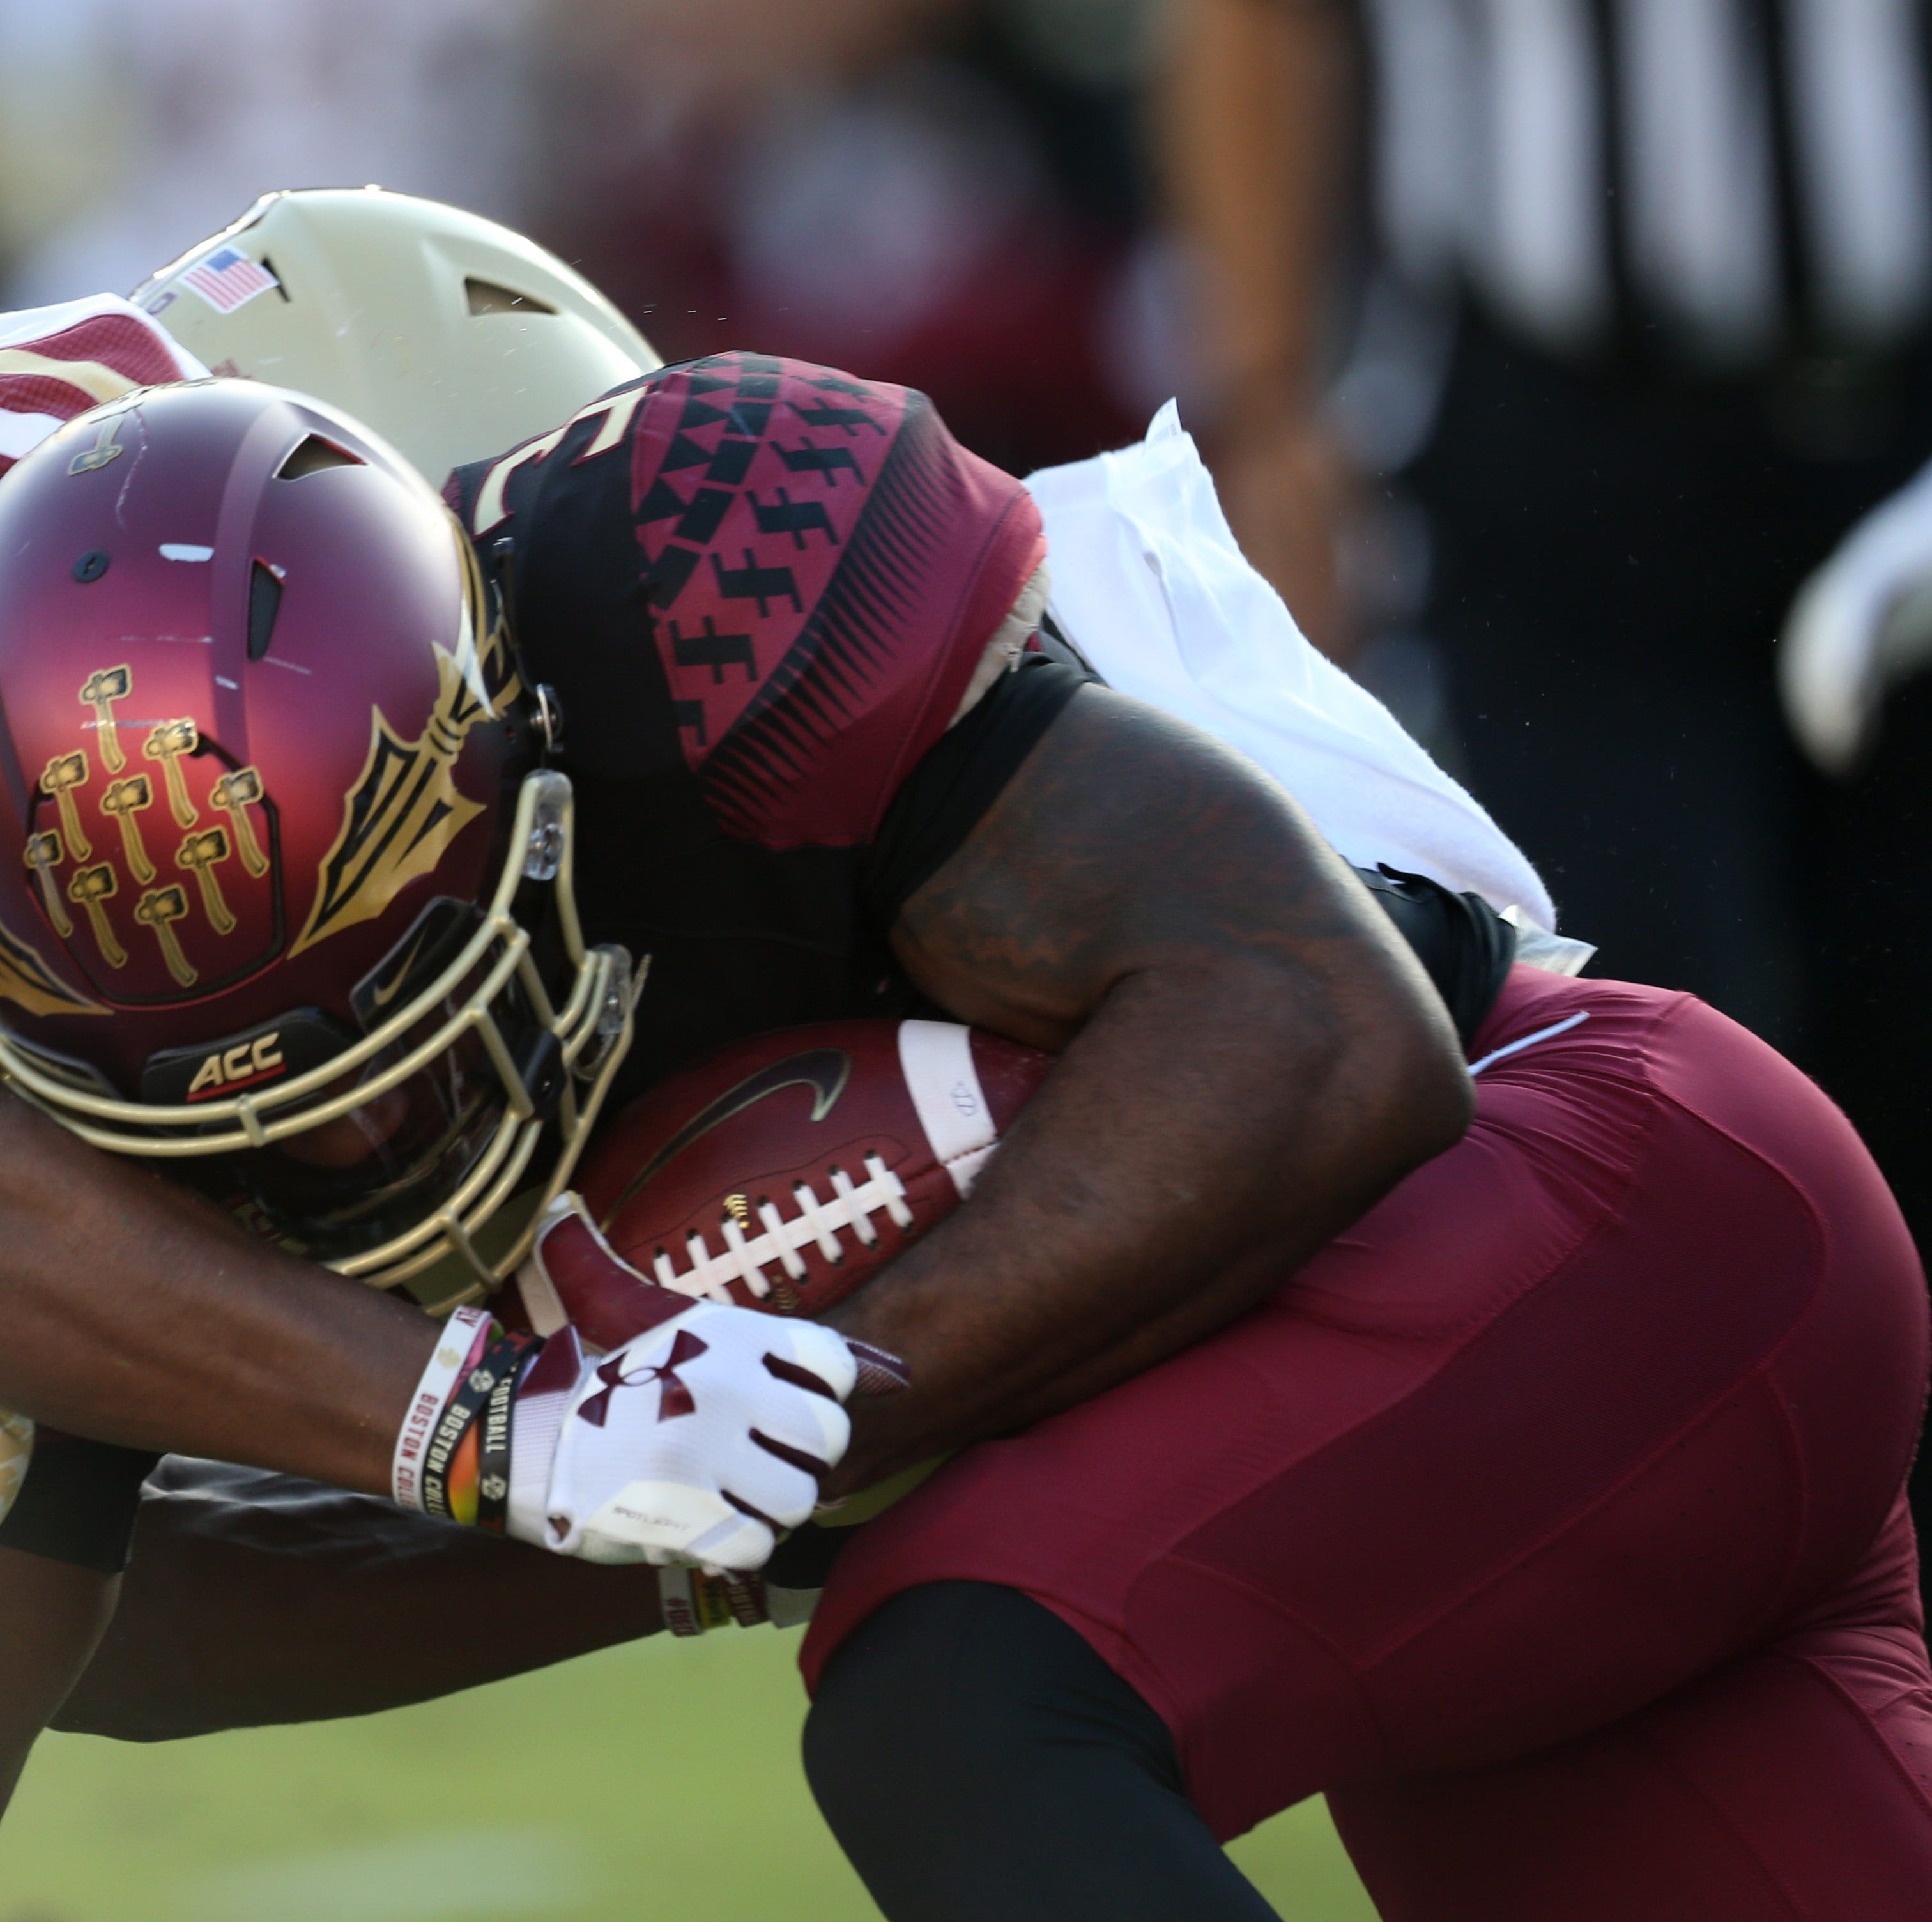 FSU Bowl Outlook: Nothing clear with ACC in chaos